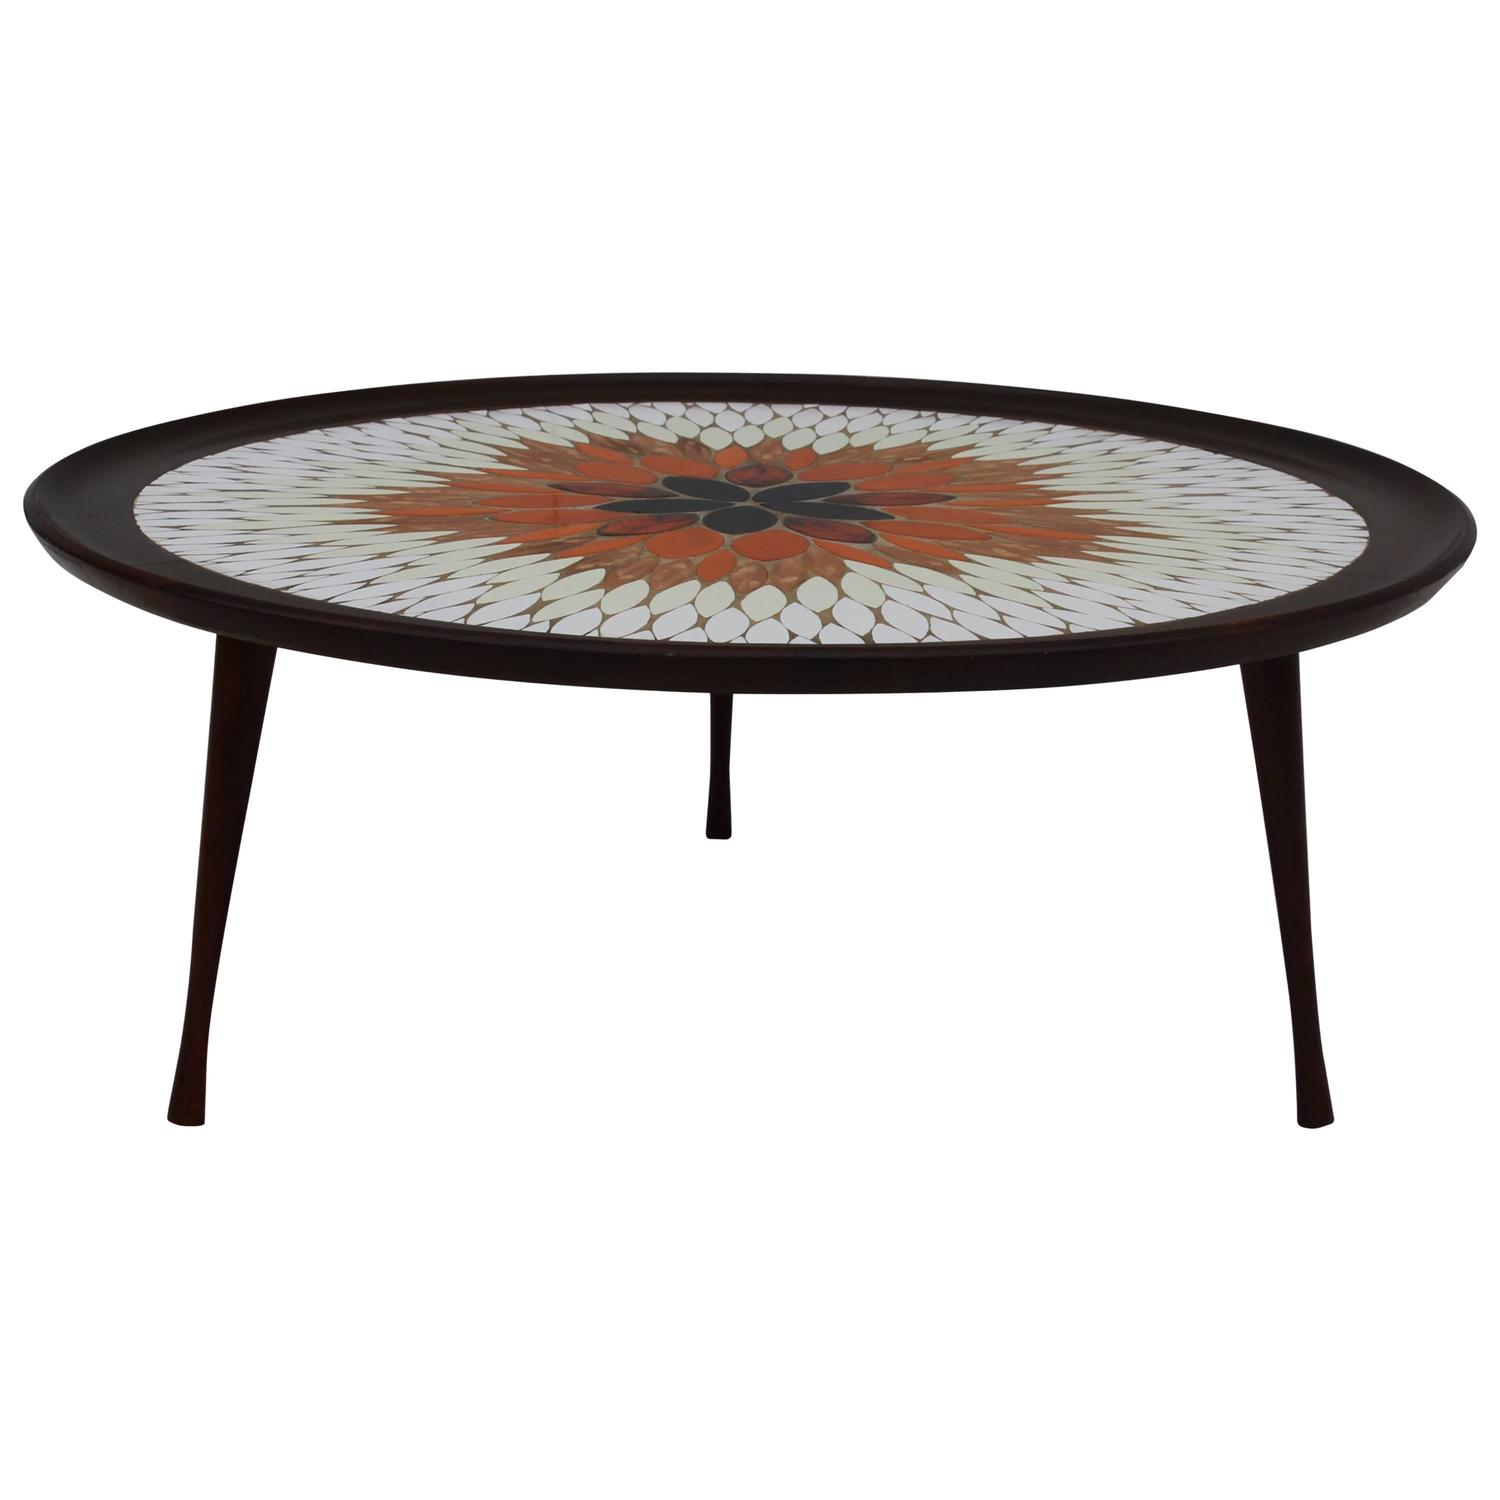 Mid century modern italian mosaic coffee table for sale at for Modern coffee table sale